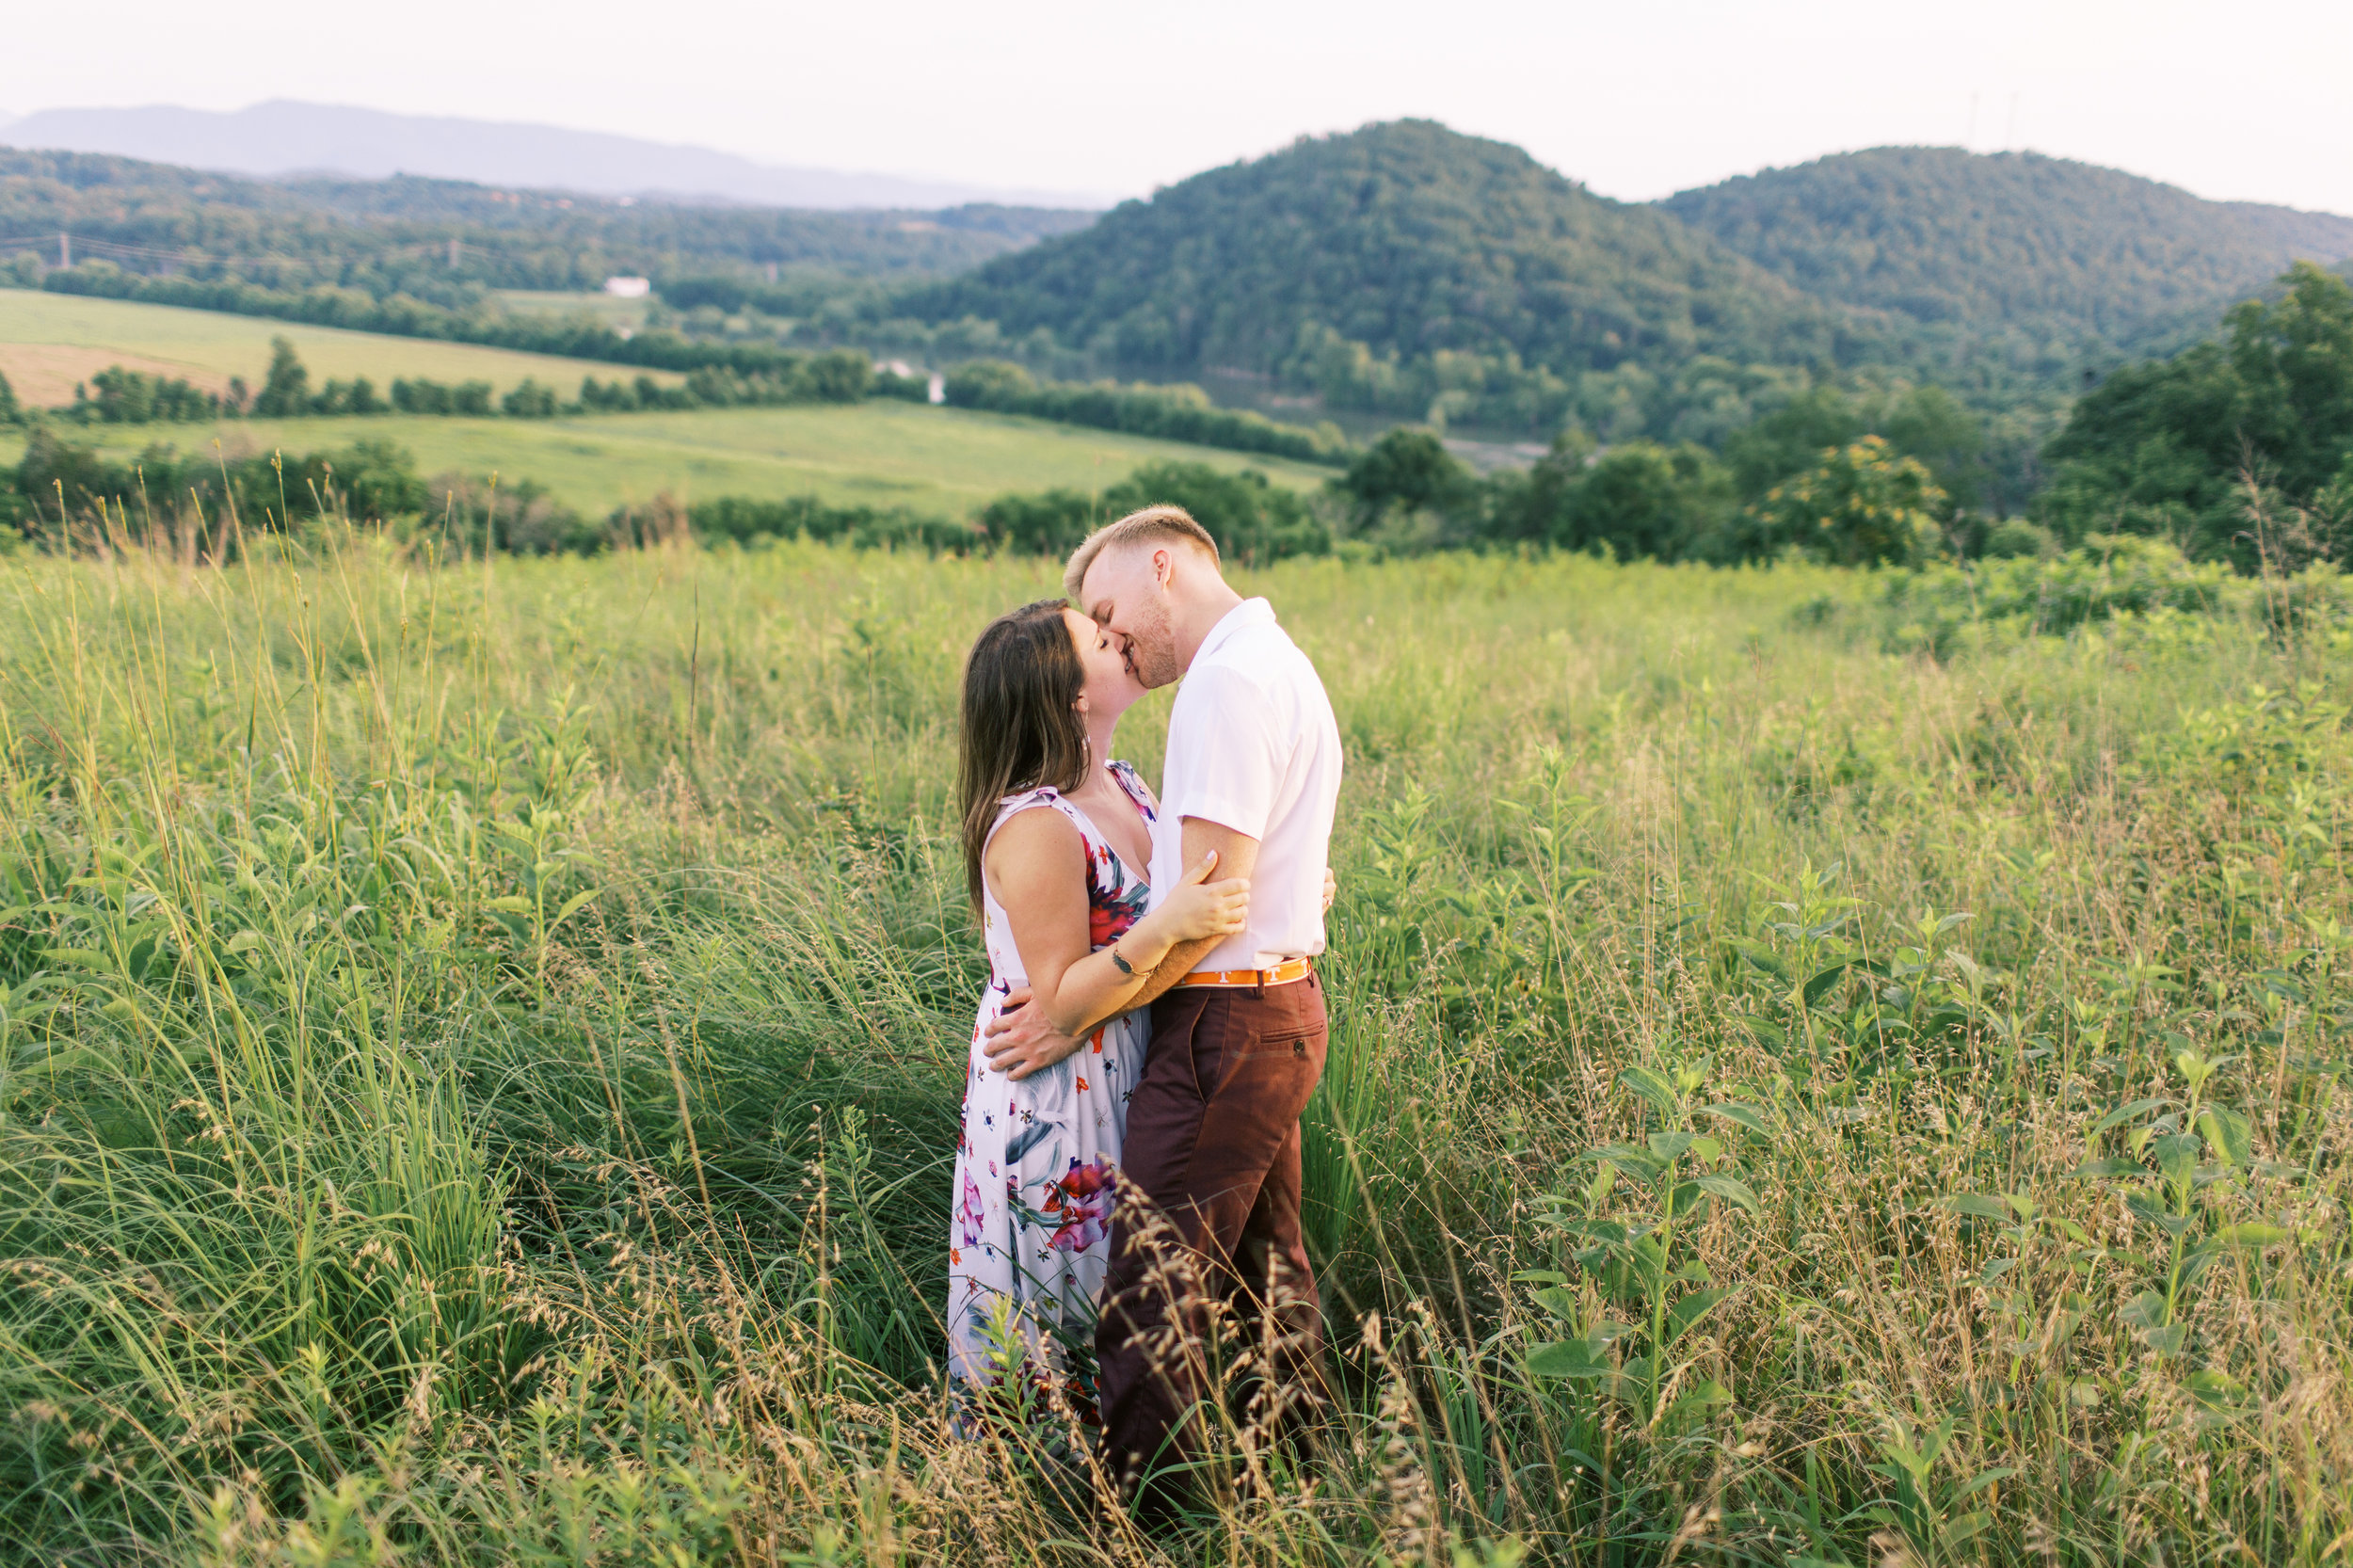 Mary_Carlton_Engagement_Smoky_Mountain_Knoxville_Abigail_Malone_Photography-171.jpg